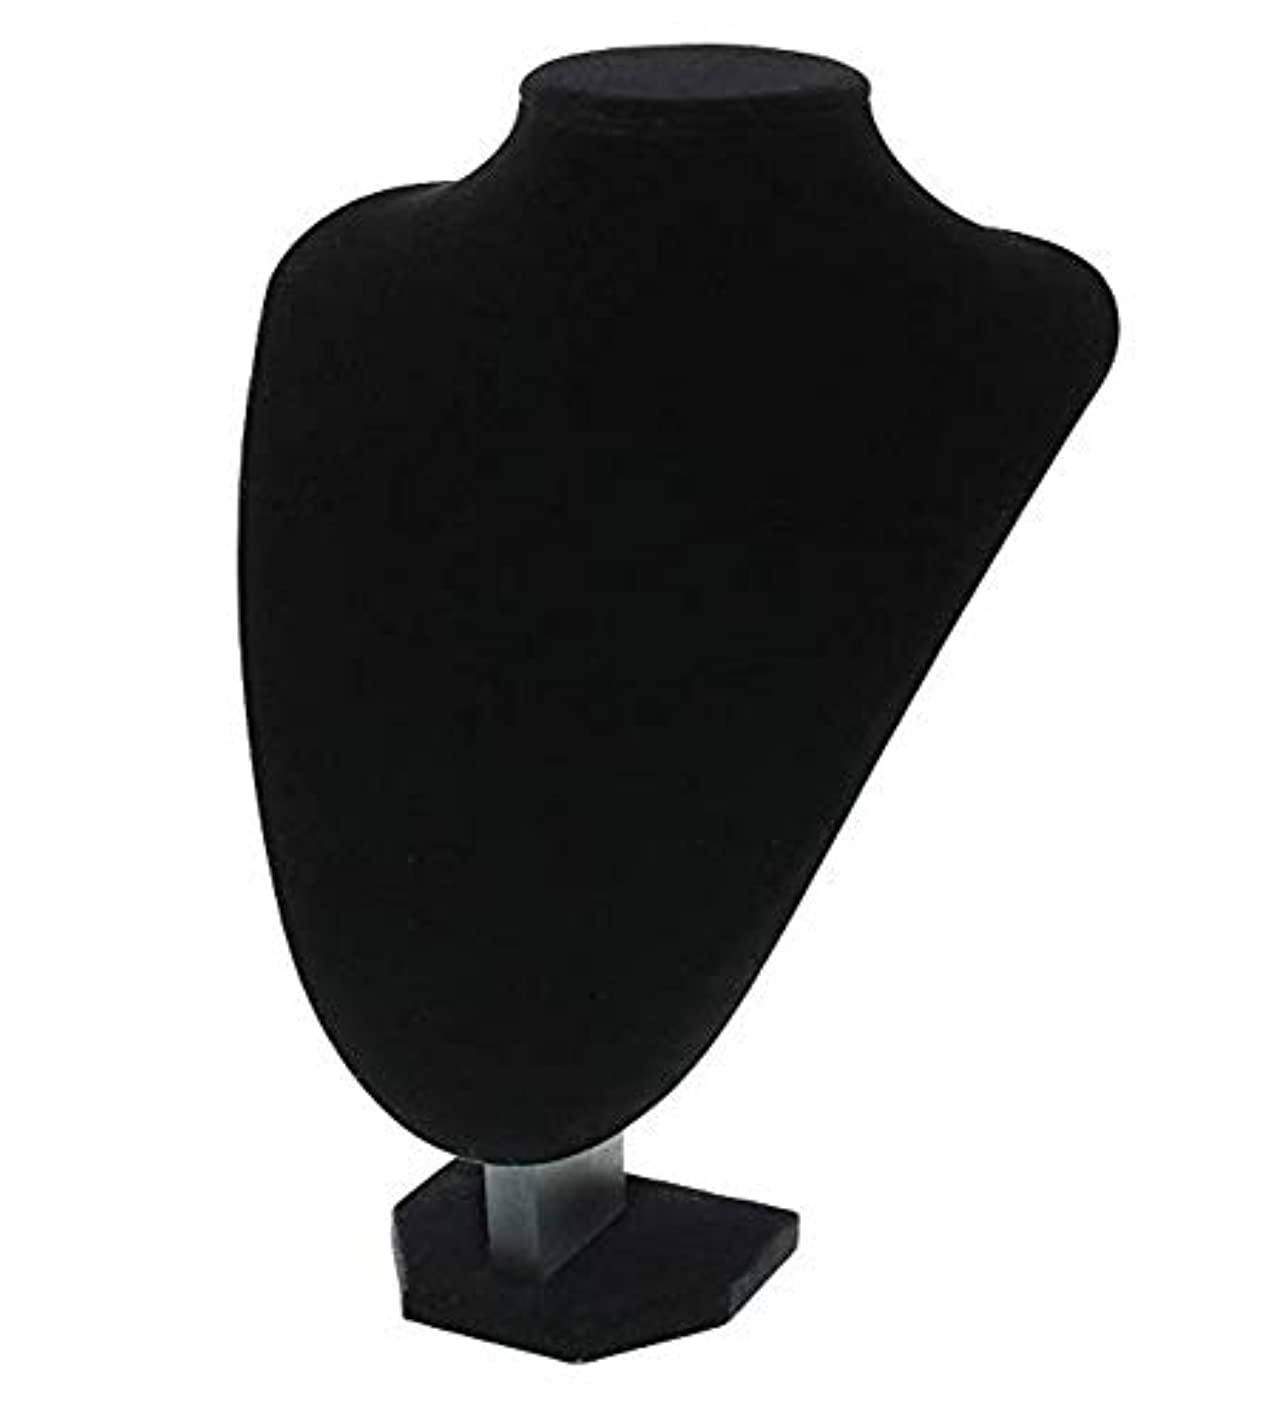 Mydio Jewelry Display Stand - 3D Black Velvet Jewelry Bust Stand Necklace Display Bust Holder 4.5 x 9 x 7 inches